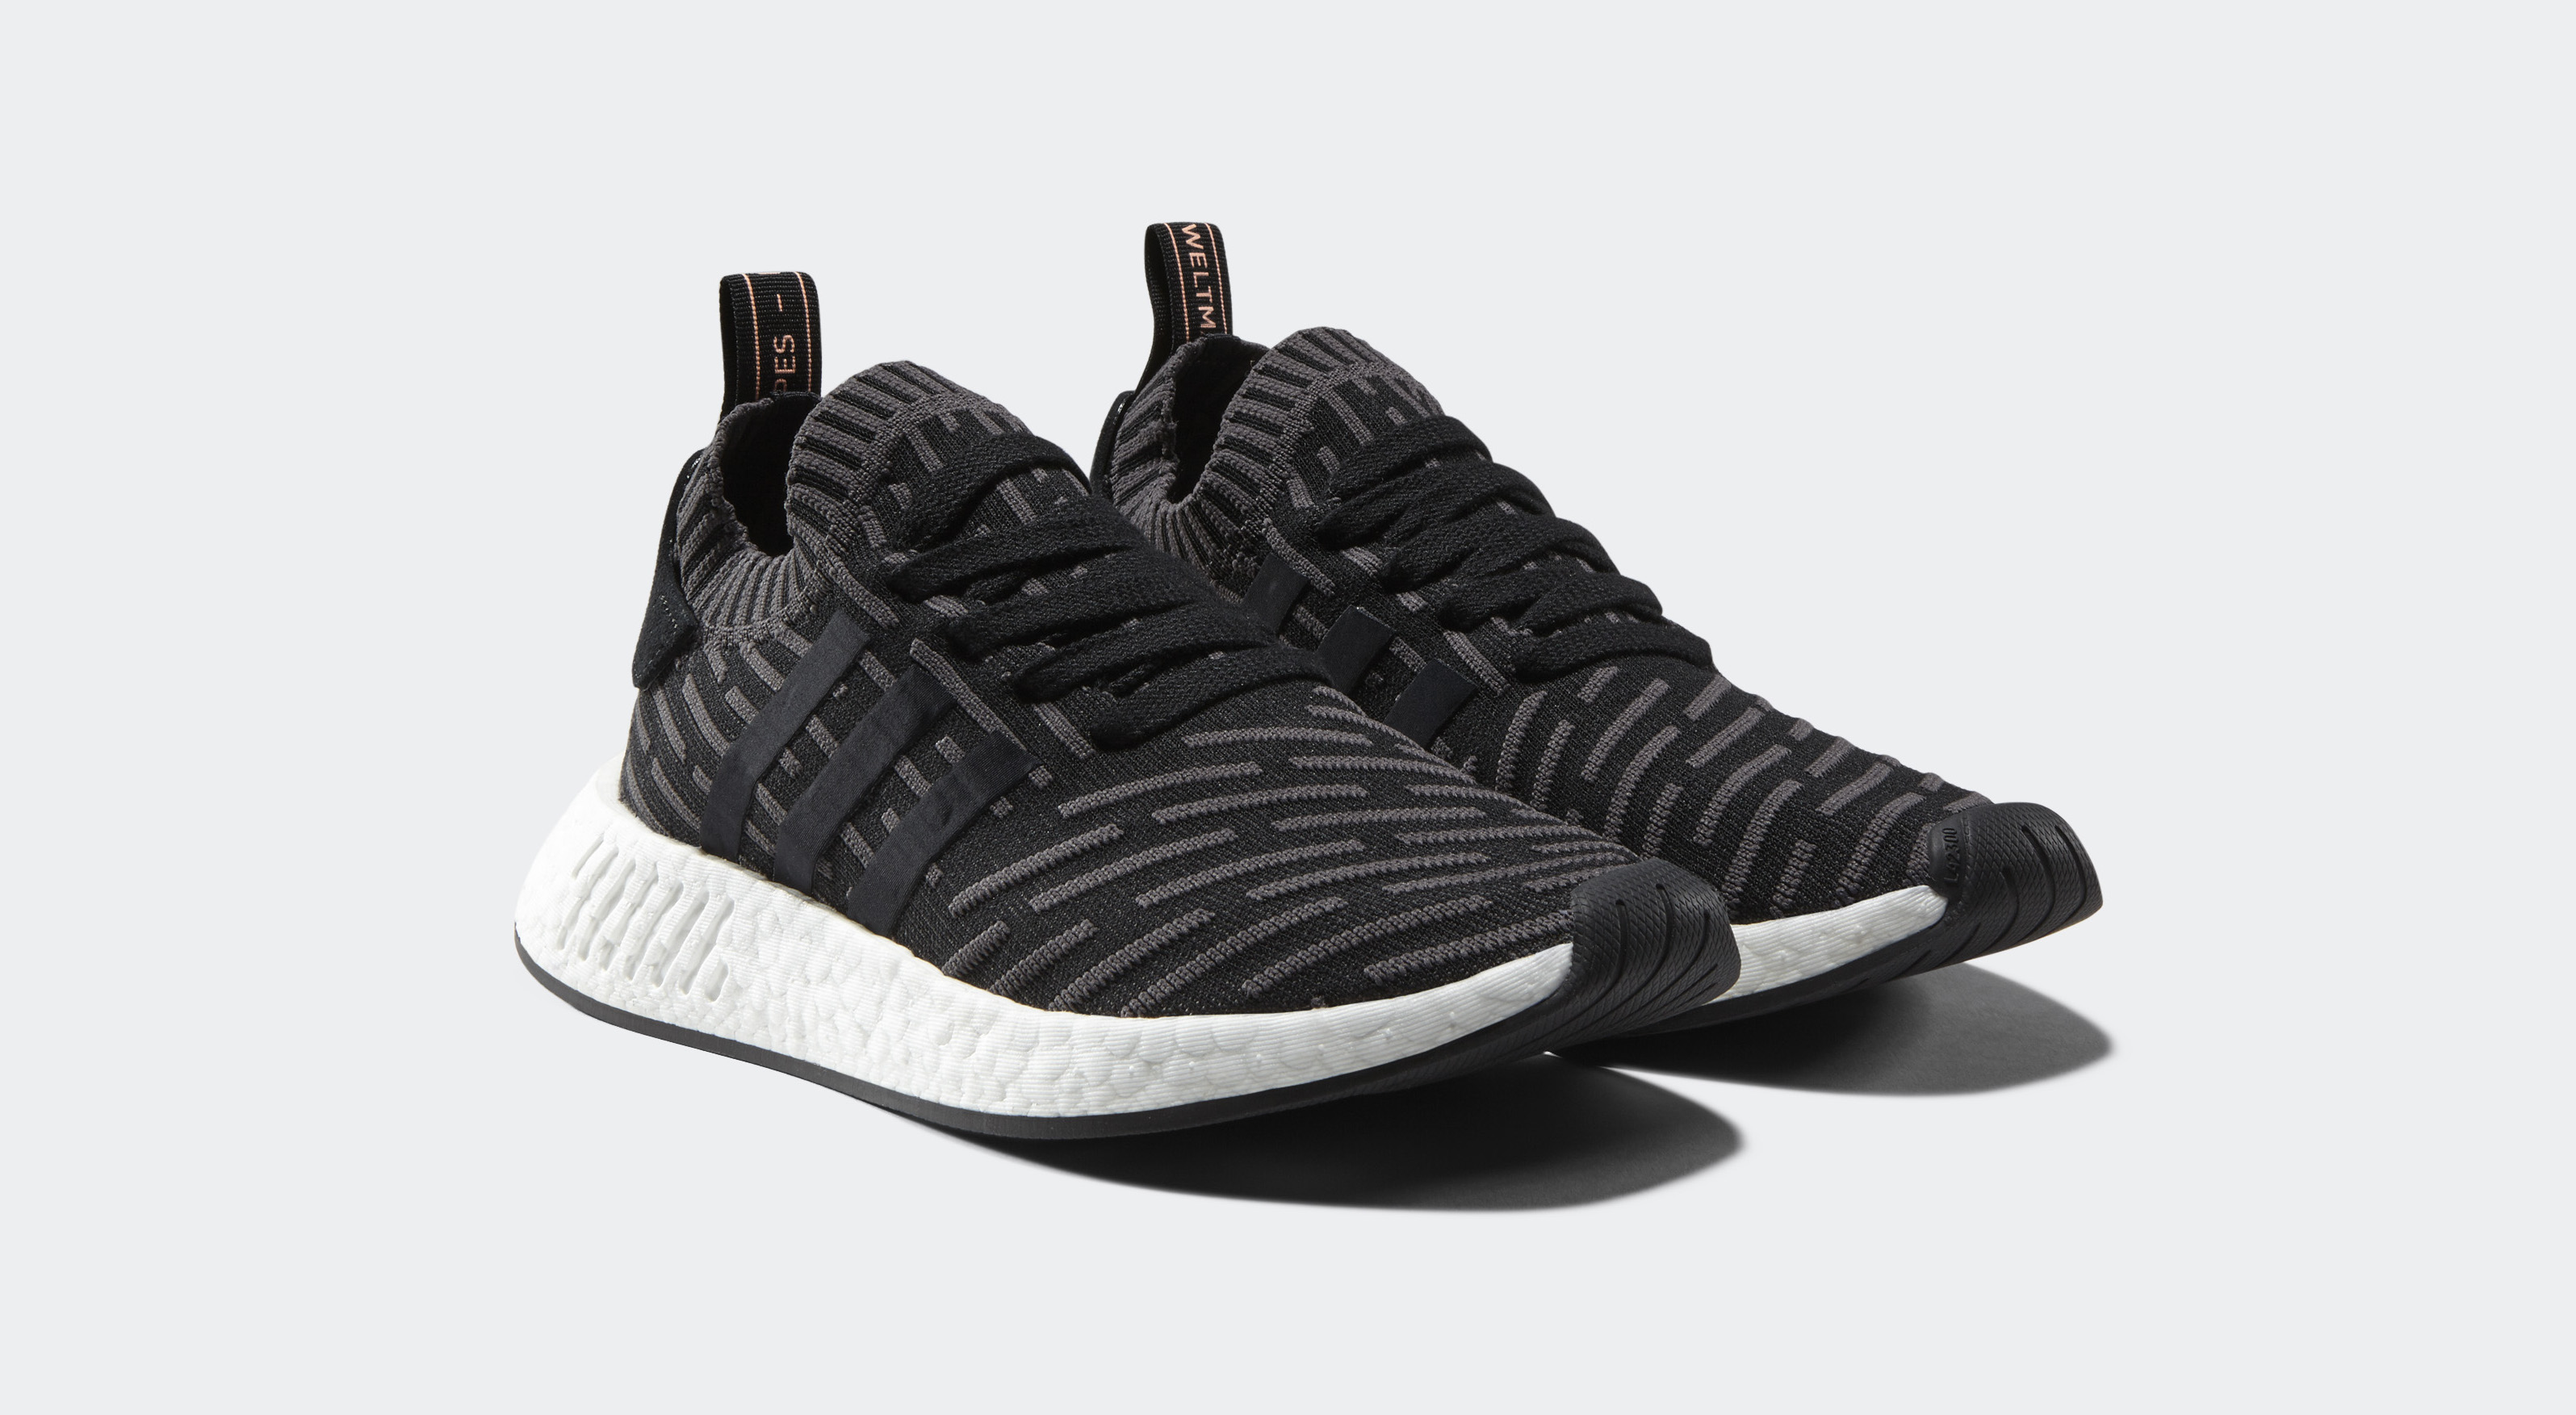 0b5a0f83bd484 Introducing the adidas NMD R 2 Sneaker Introducing the adidas NMD R 2